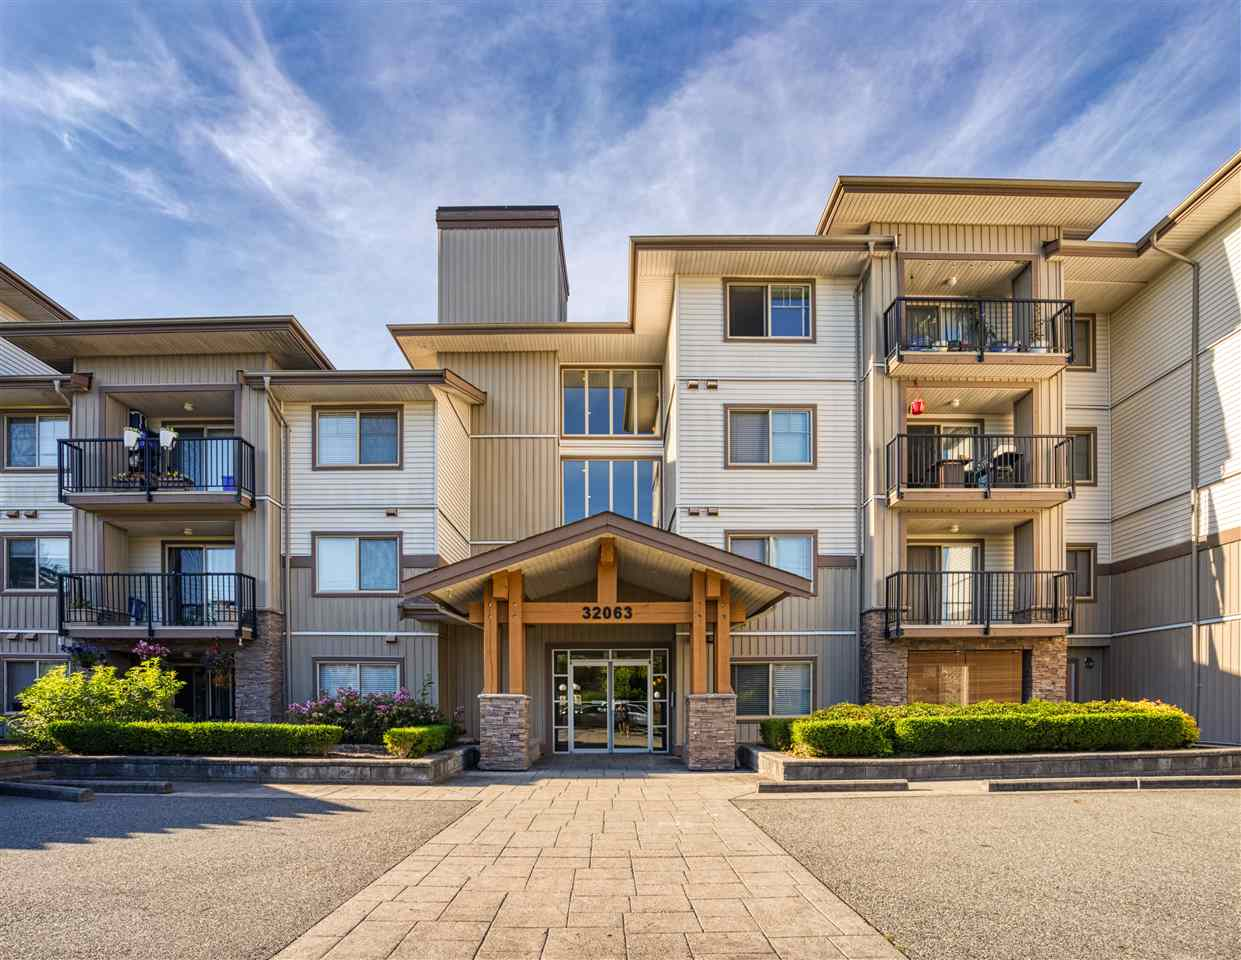 210 32063 MT WADDINGTON AVENUE - Abbotsford West Apartment/Condo for sale, 2 Bedrooms (R2478748) - #1